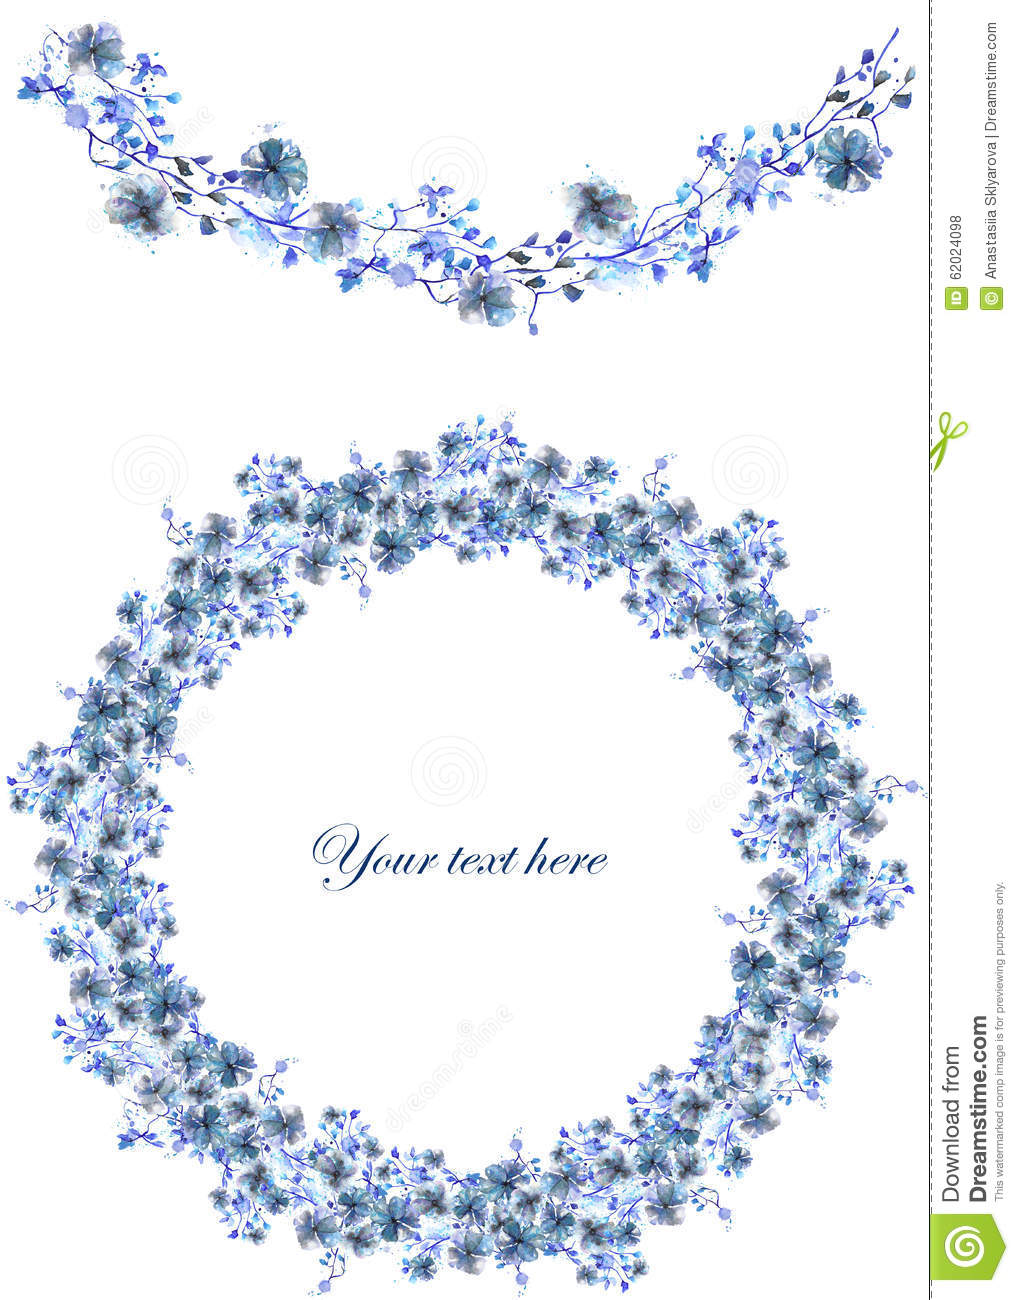 Frame Border Garland And Wreath Of Blue Flowers And